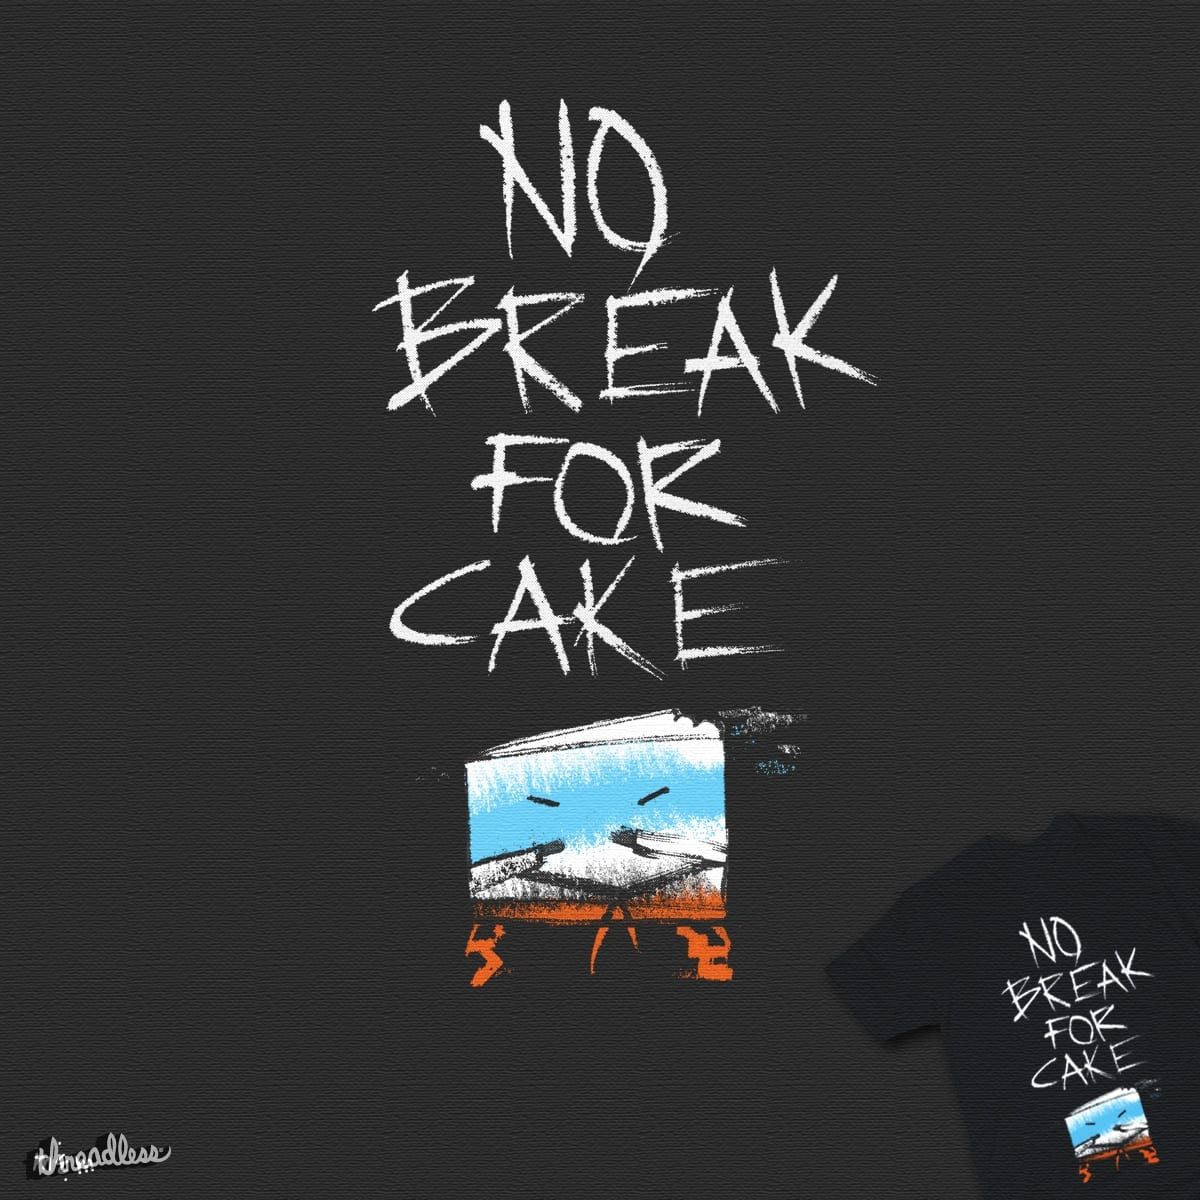 No Break for Cake by Boiled fly on Threadless